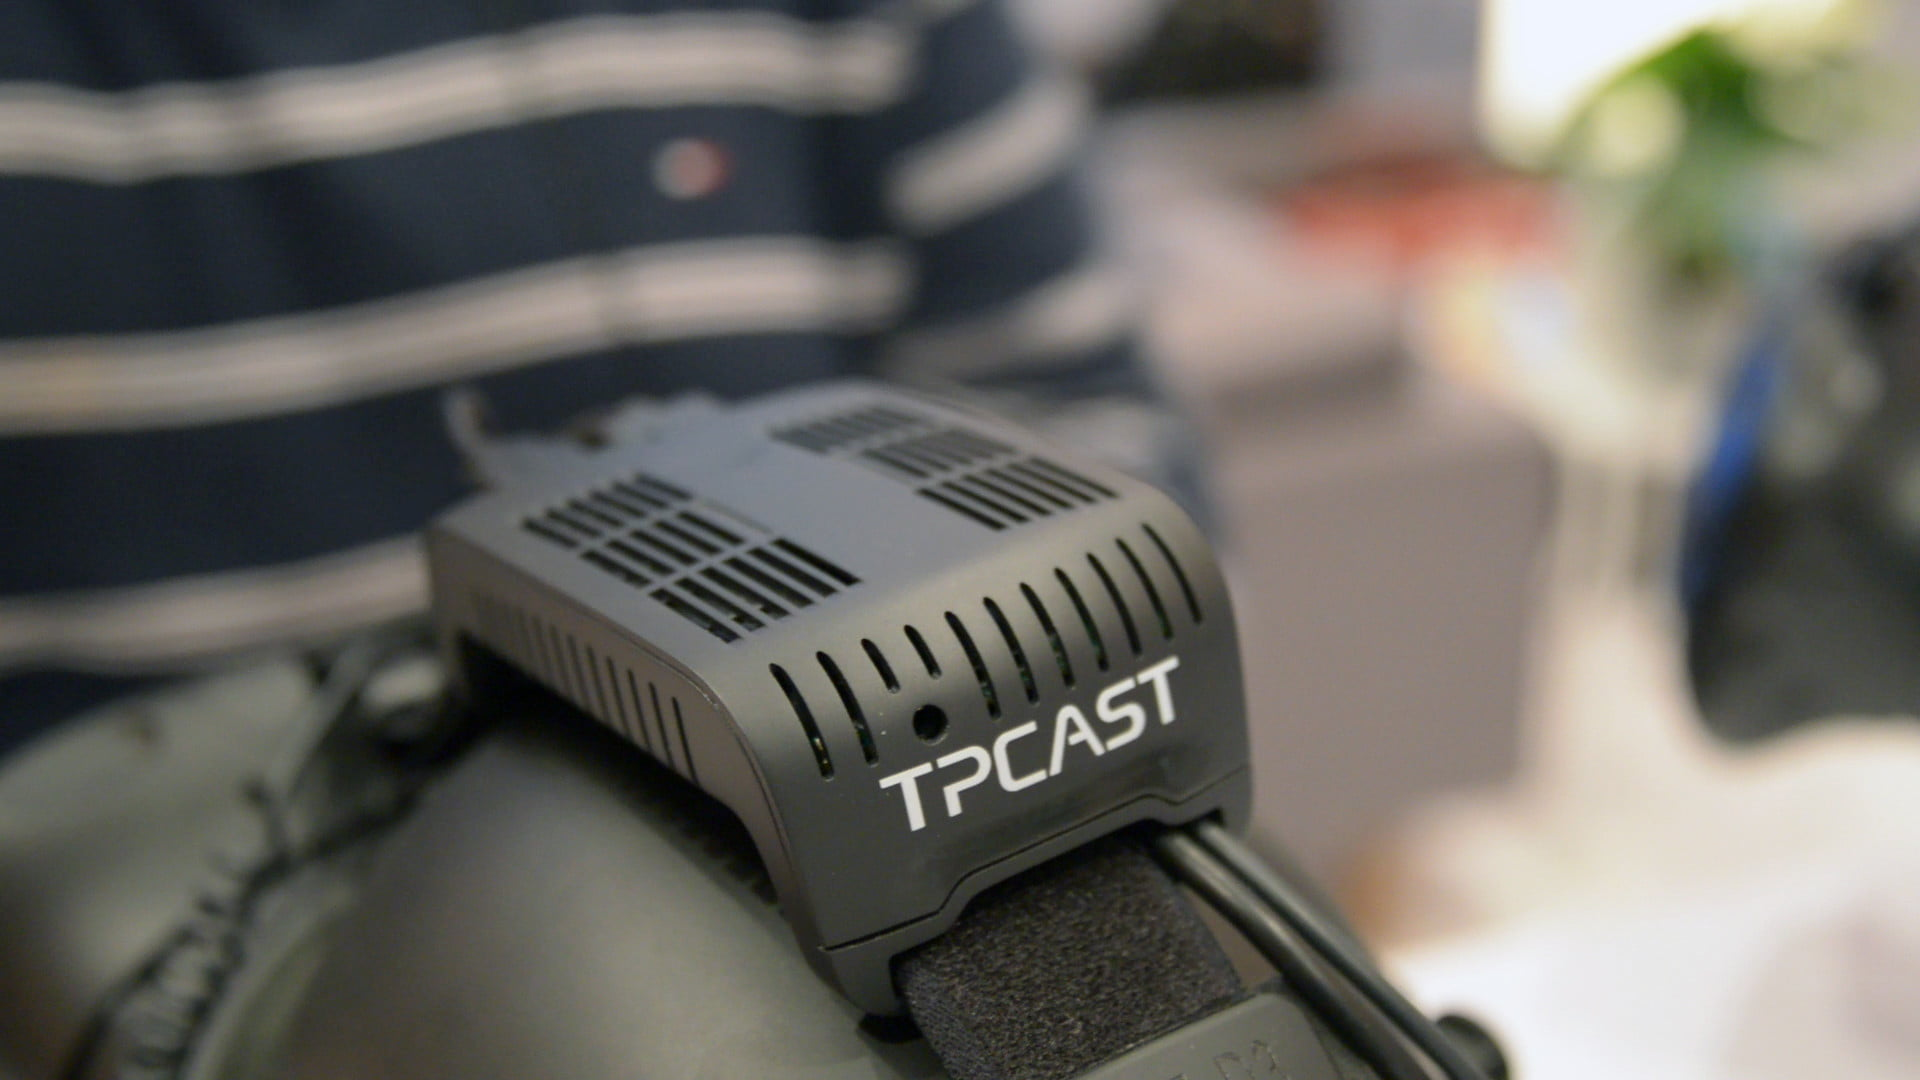 TP Cast Vive wireless adapter